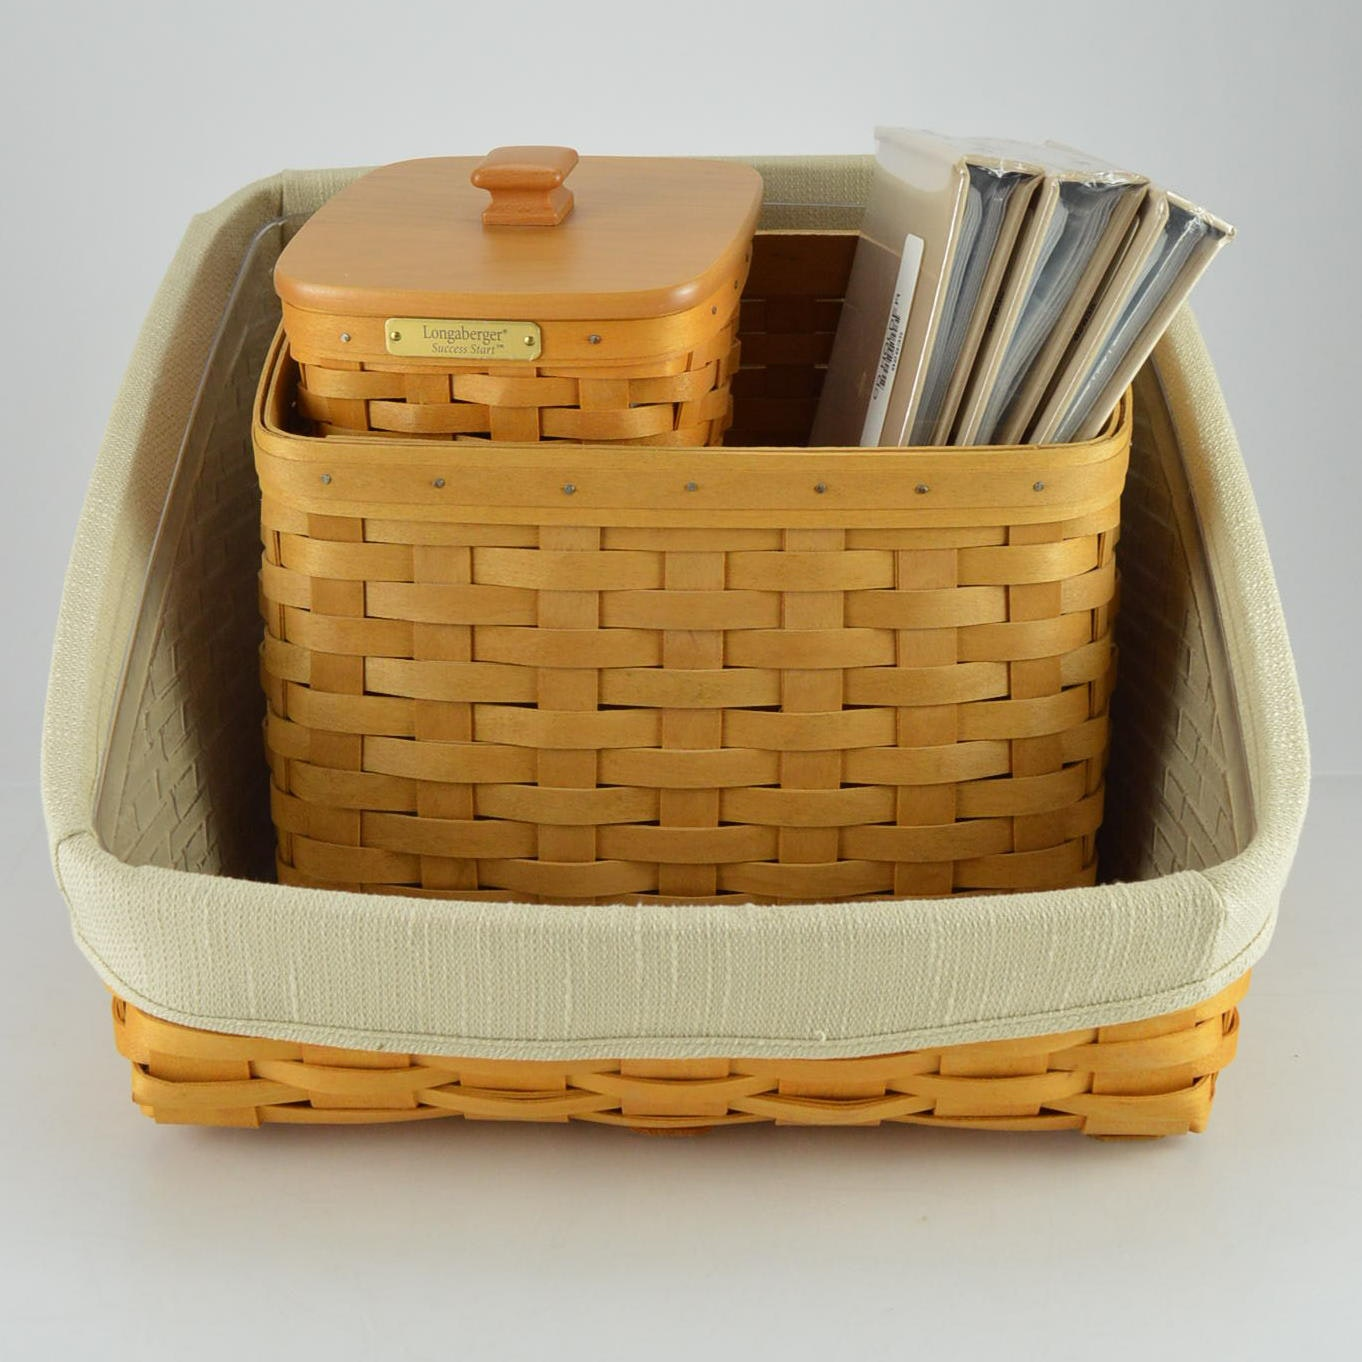 Collection of Longaberger Baskets and Accessories